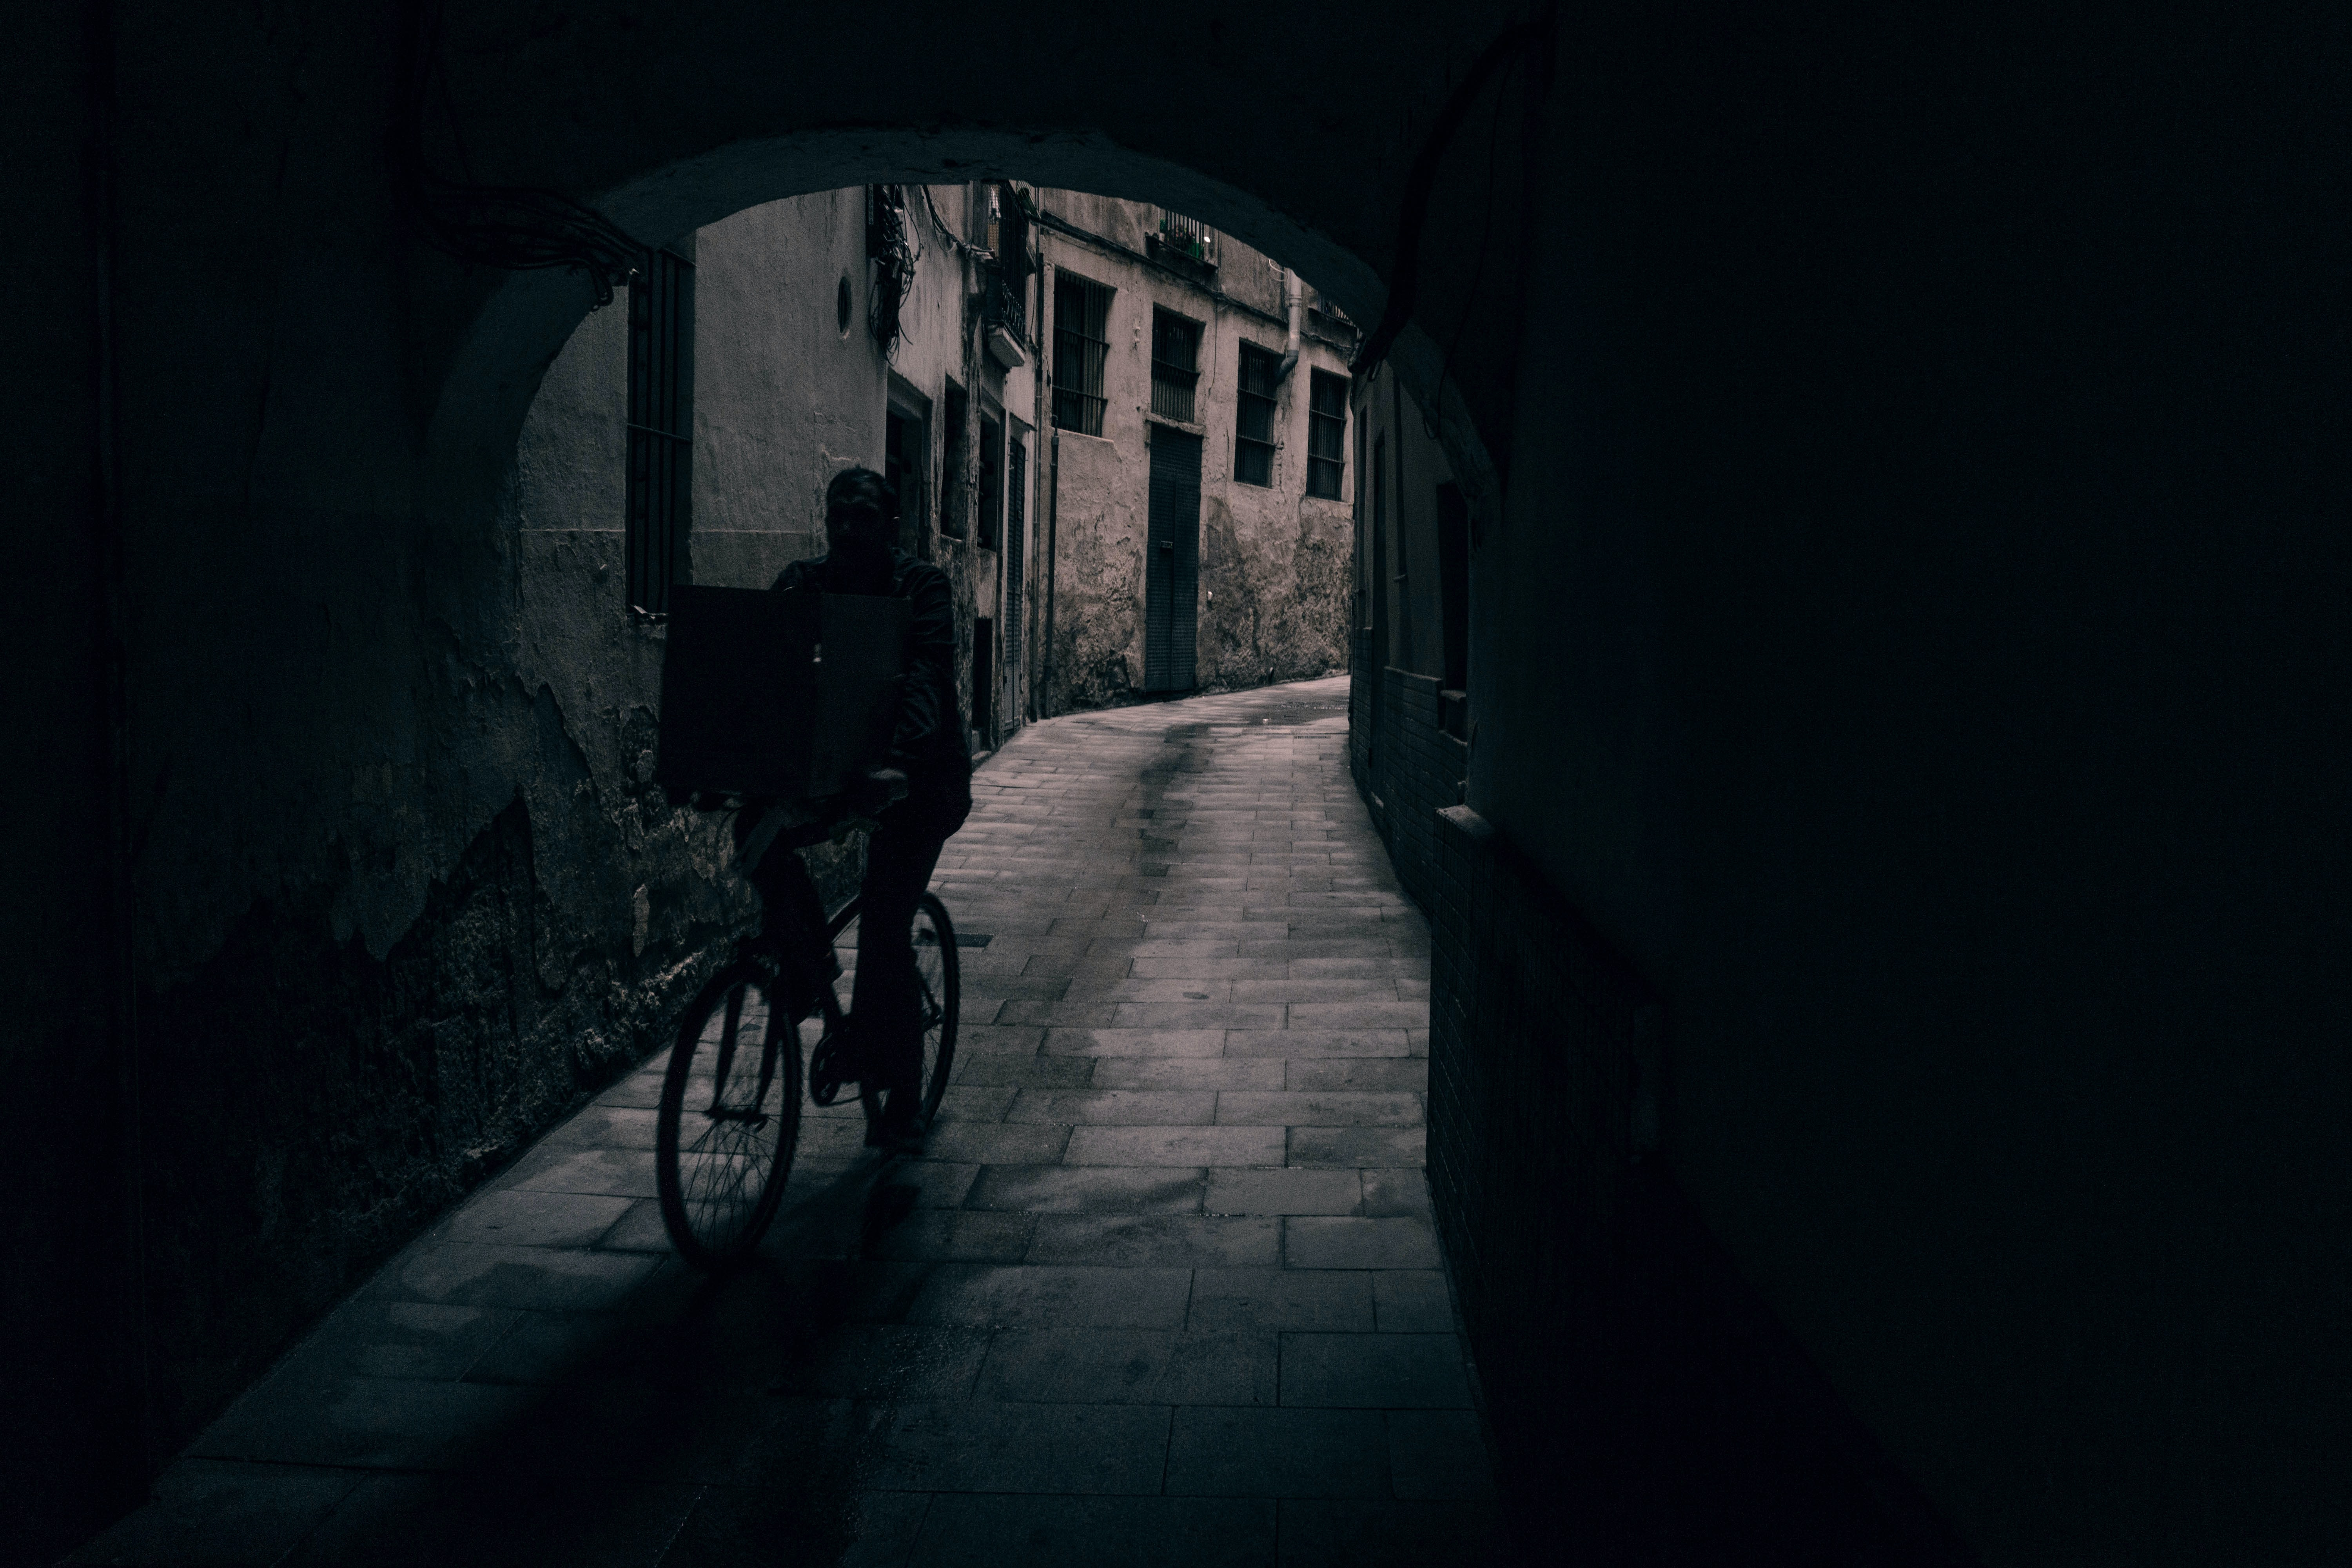 silhouette of person riding bicycle in tunnel